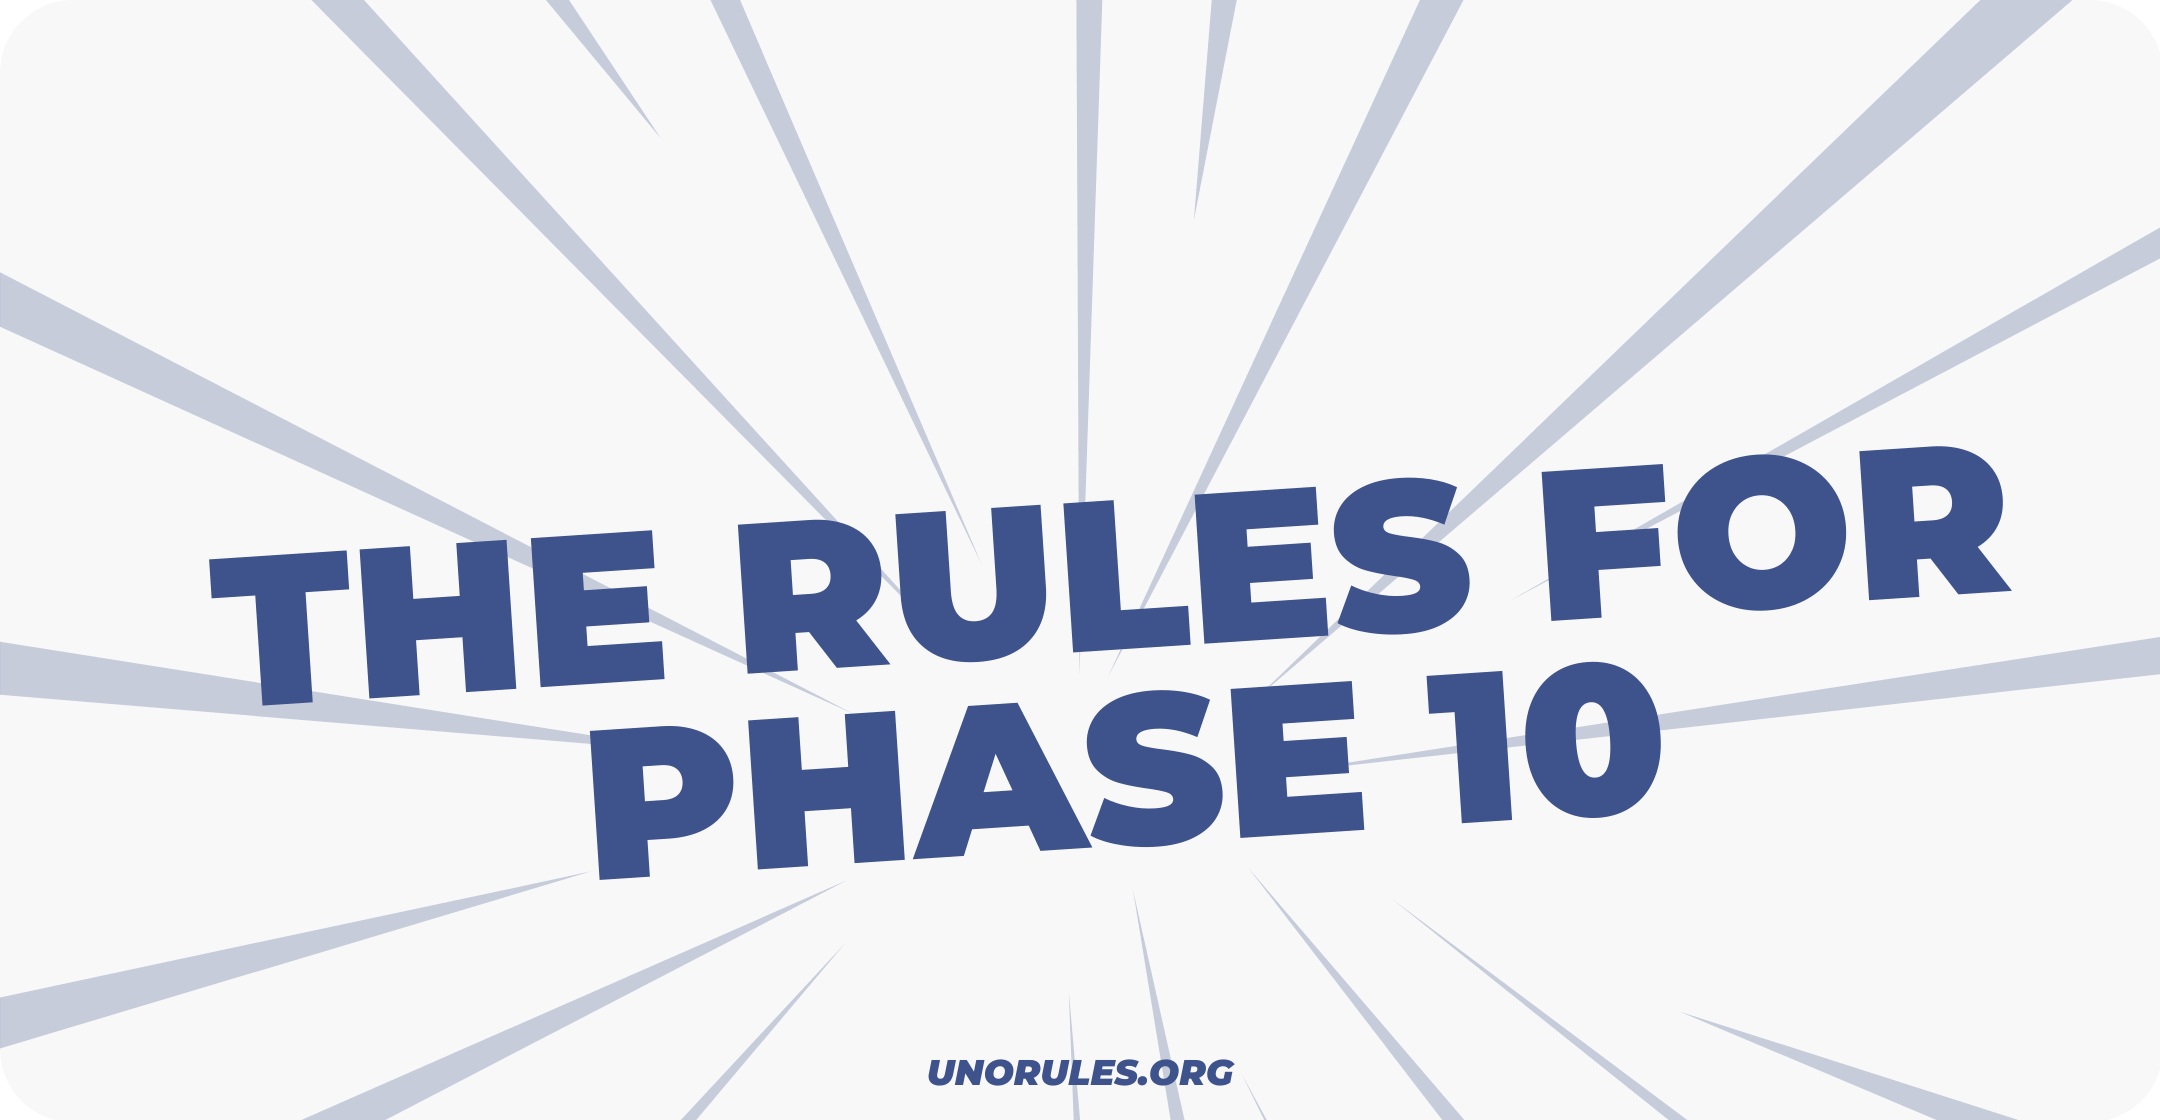 Where can you find the rules for Phase 10?